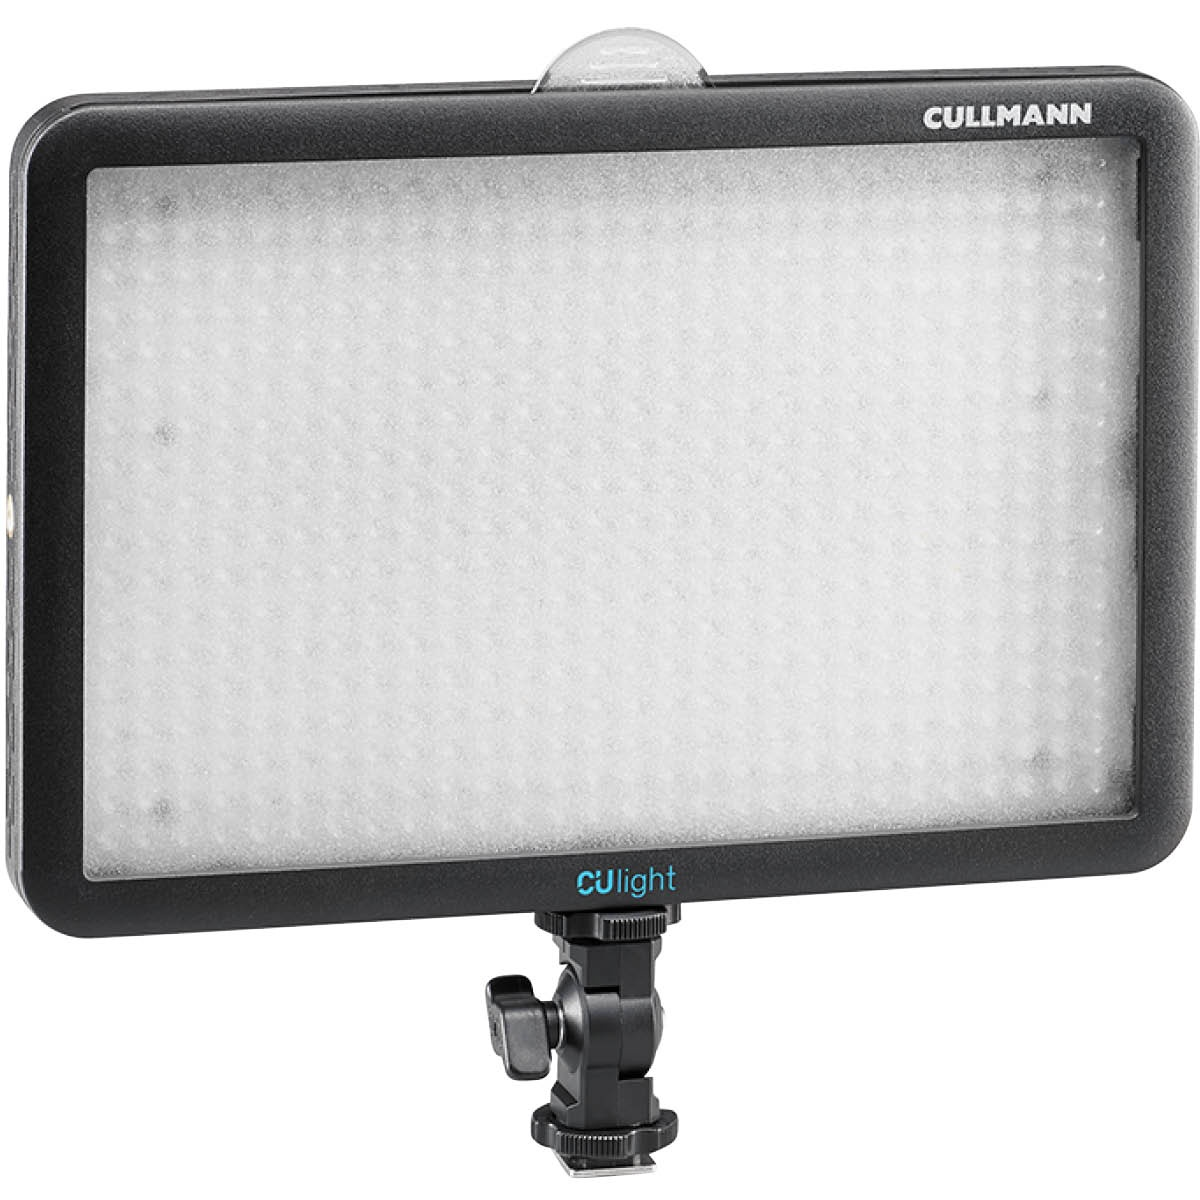 Cullmann Culight VR 2900 DL LED-Leuchte